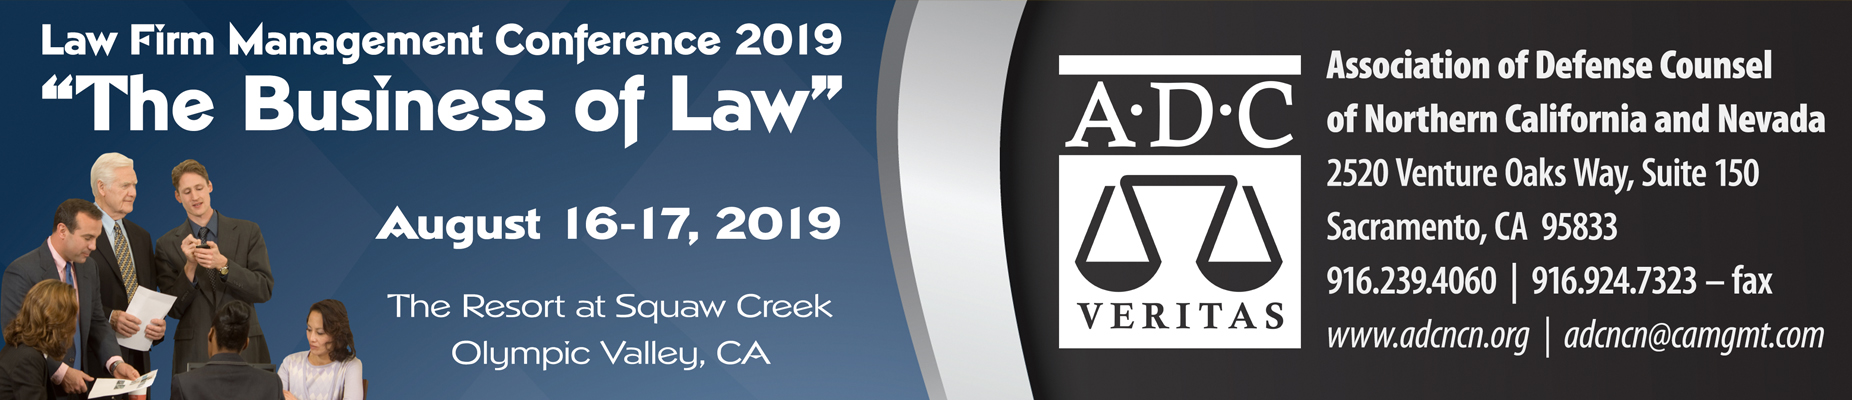 ADC Law Firm Management Conference 2019